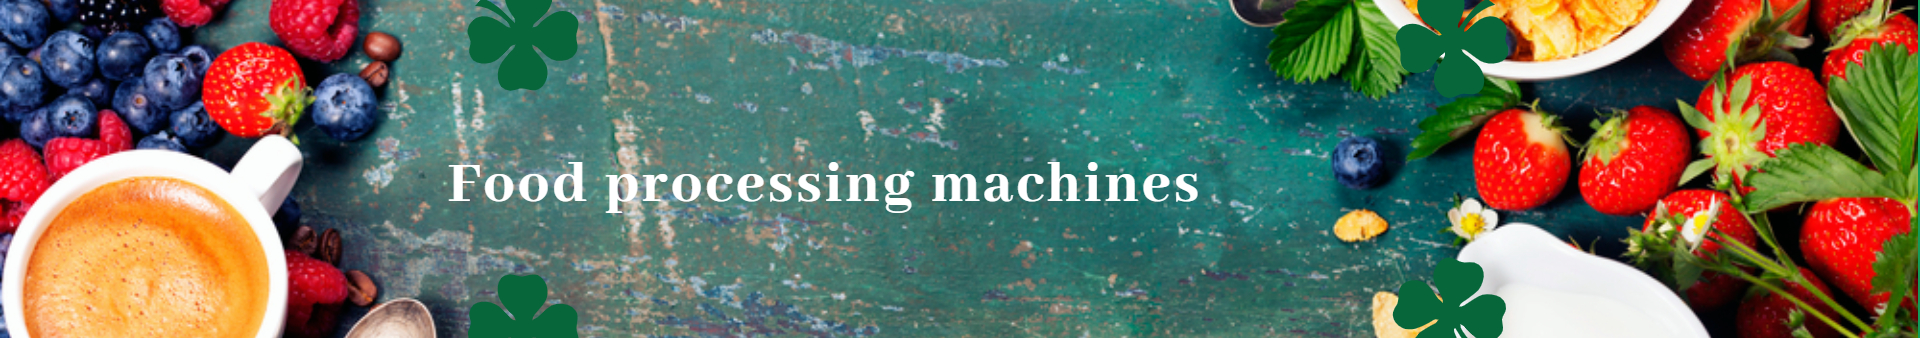 Food processing machines - Banner